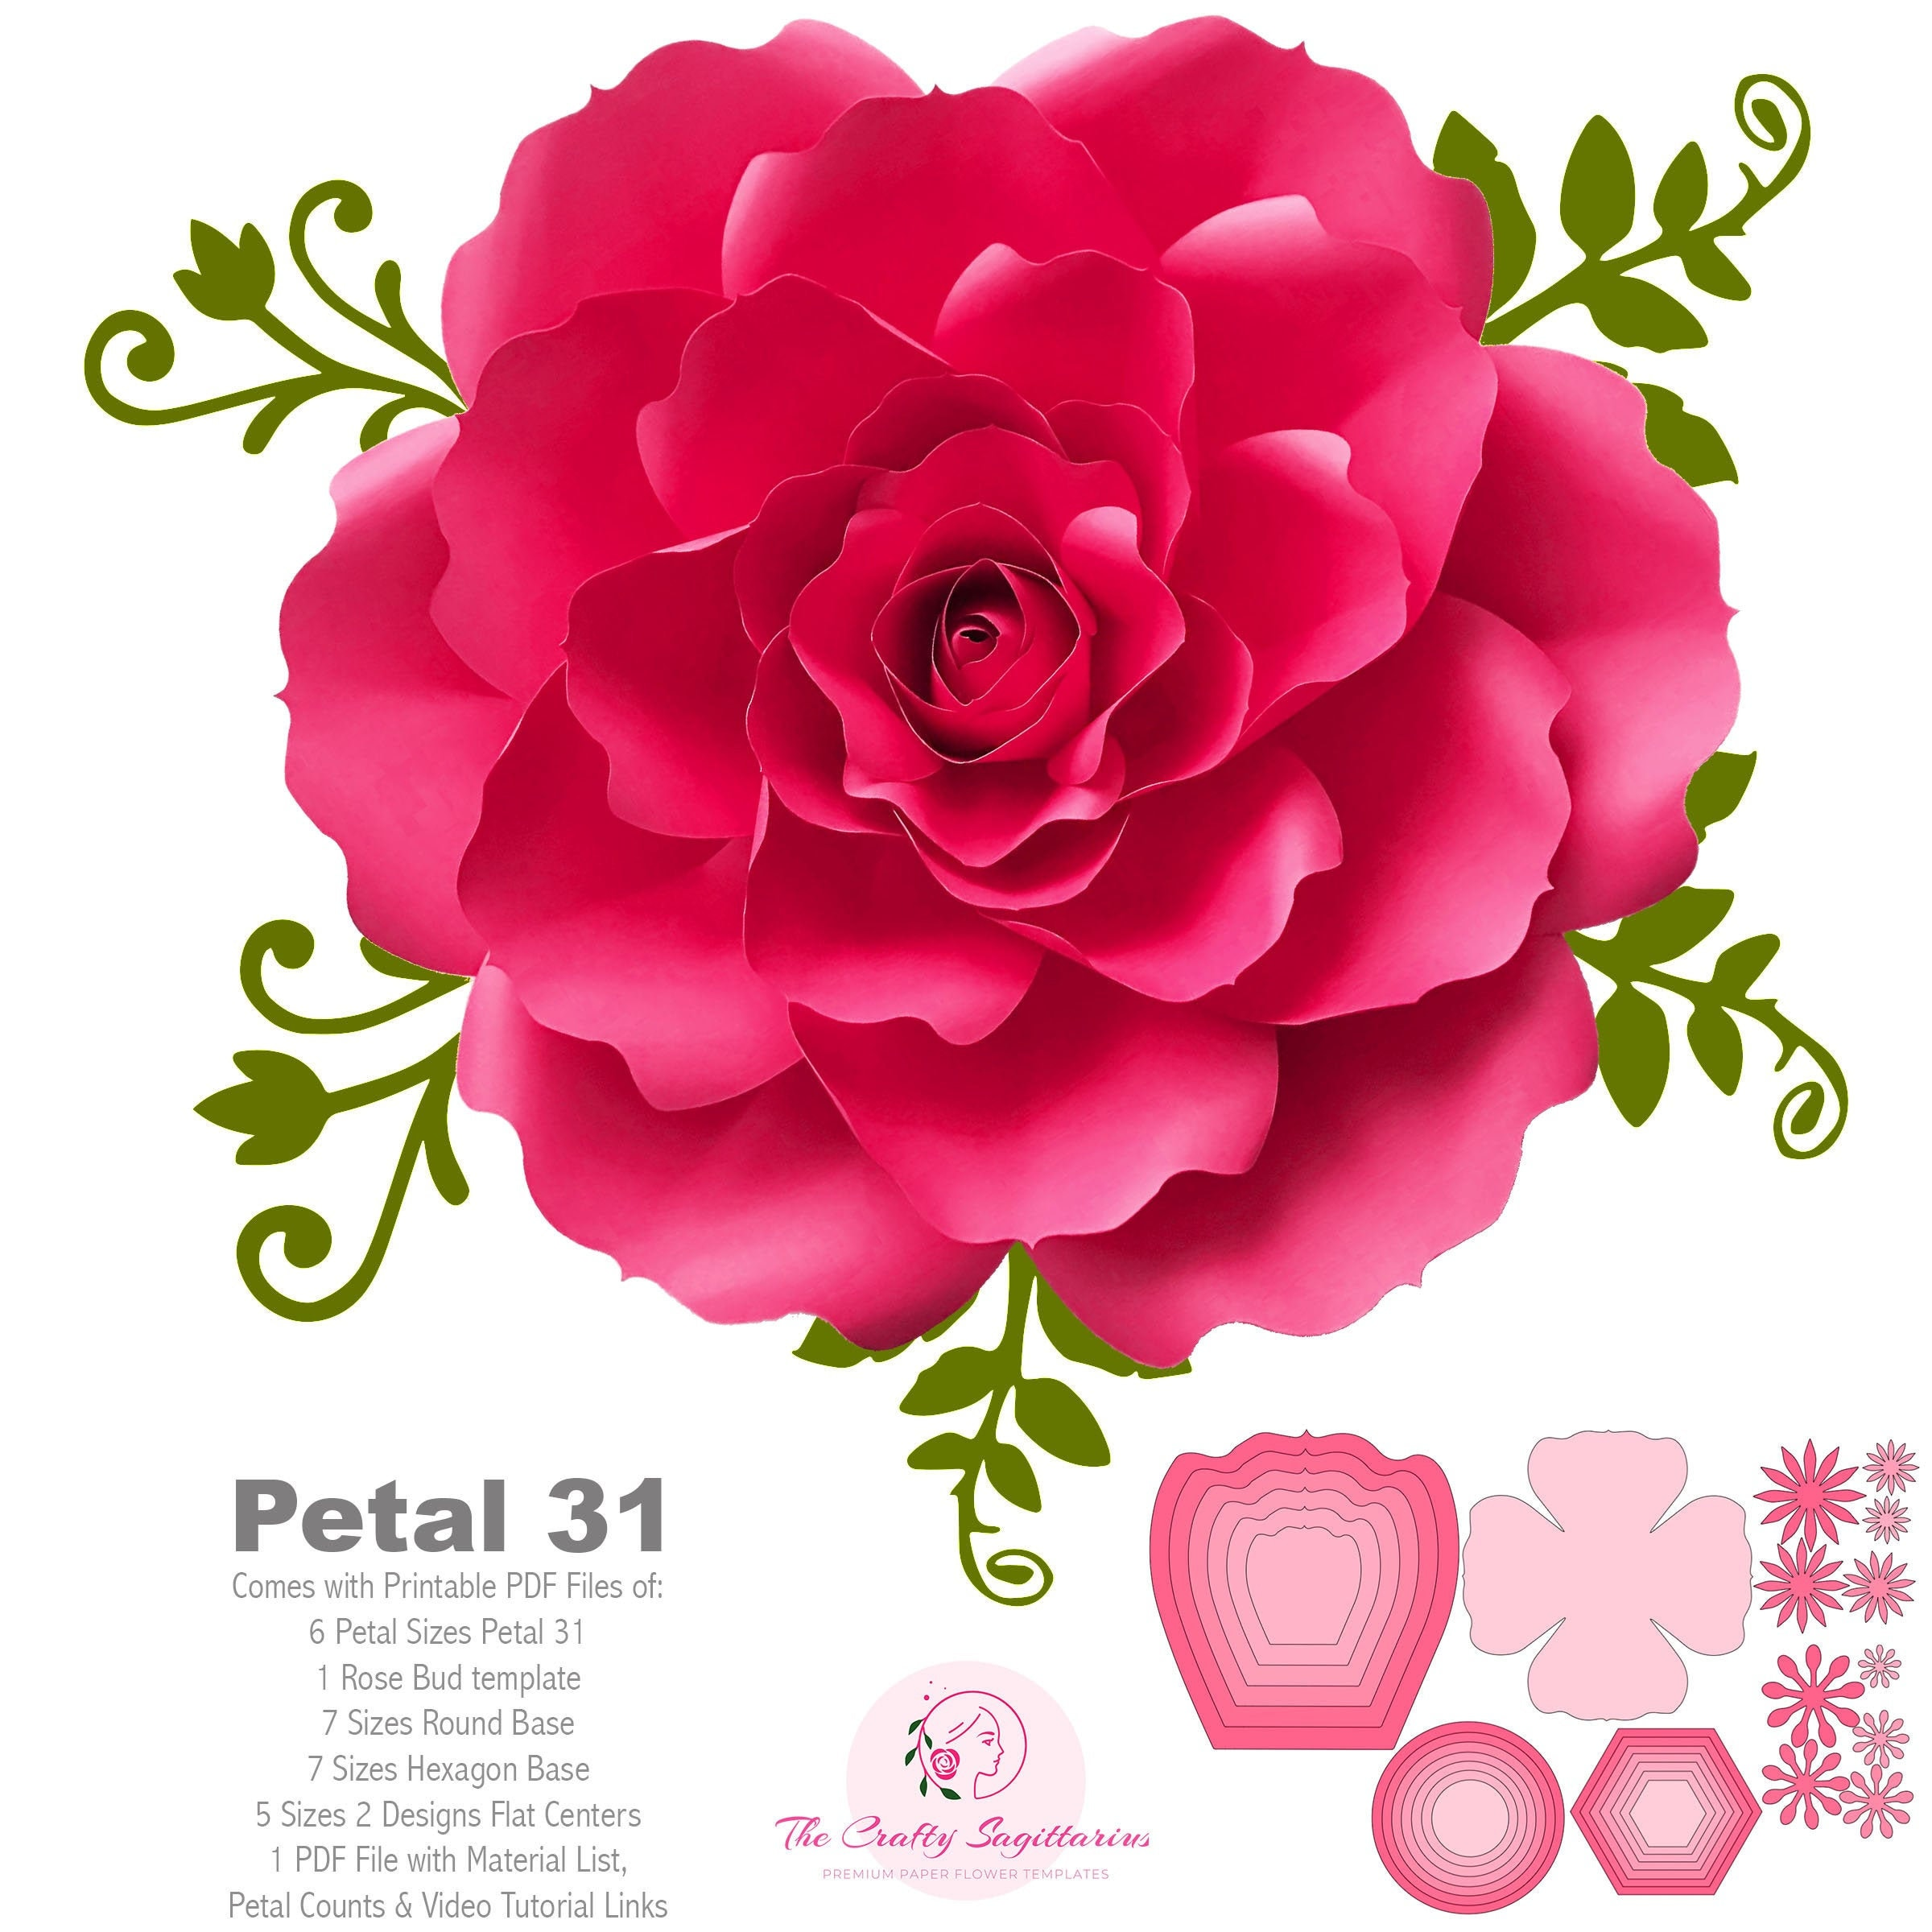 Svg Png Dxf Petal 31 Cut Files For Cutting Machines Diy Paper Flowers Templates With Rose Bud And Flat Center To Make Unlimited Open Rose